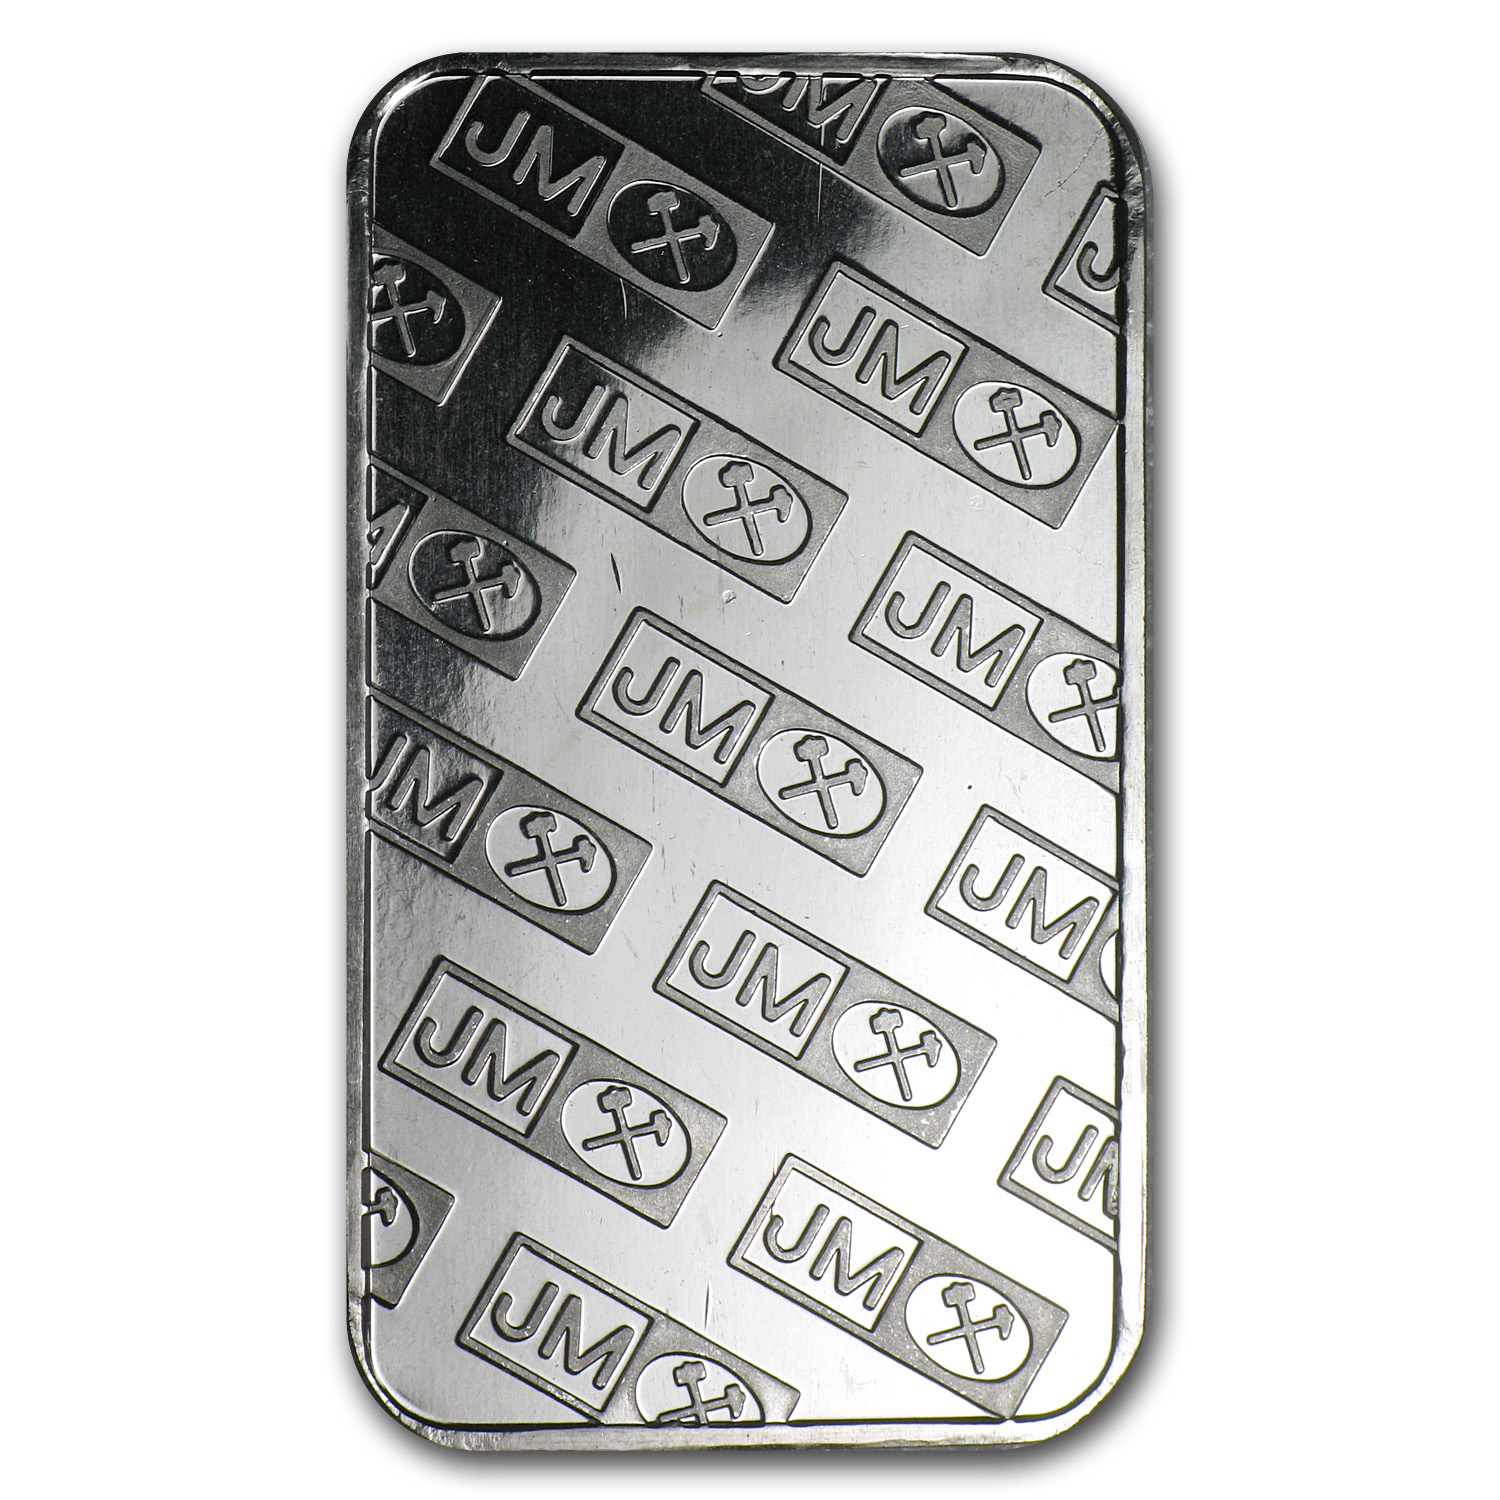 1 oz Palladium Bar - Johnson Matthey (Logo Back, No Assay)